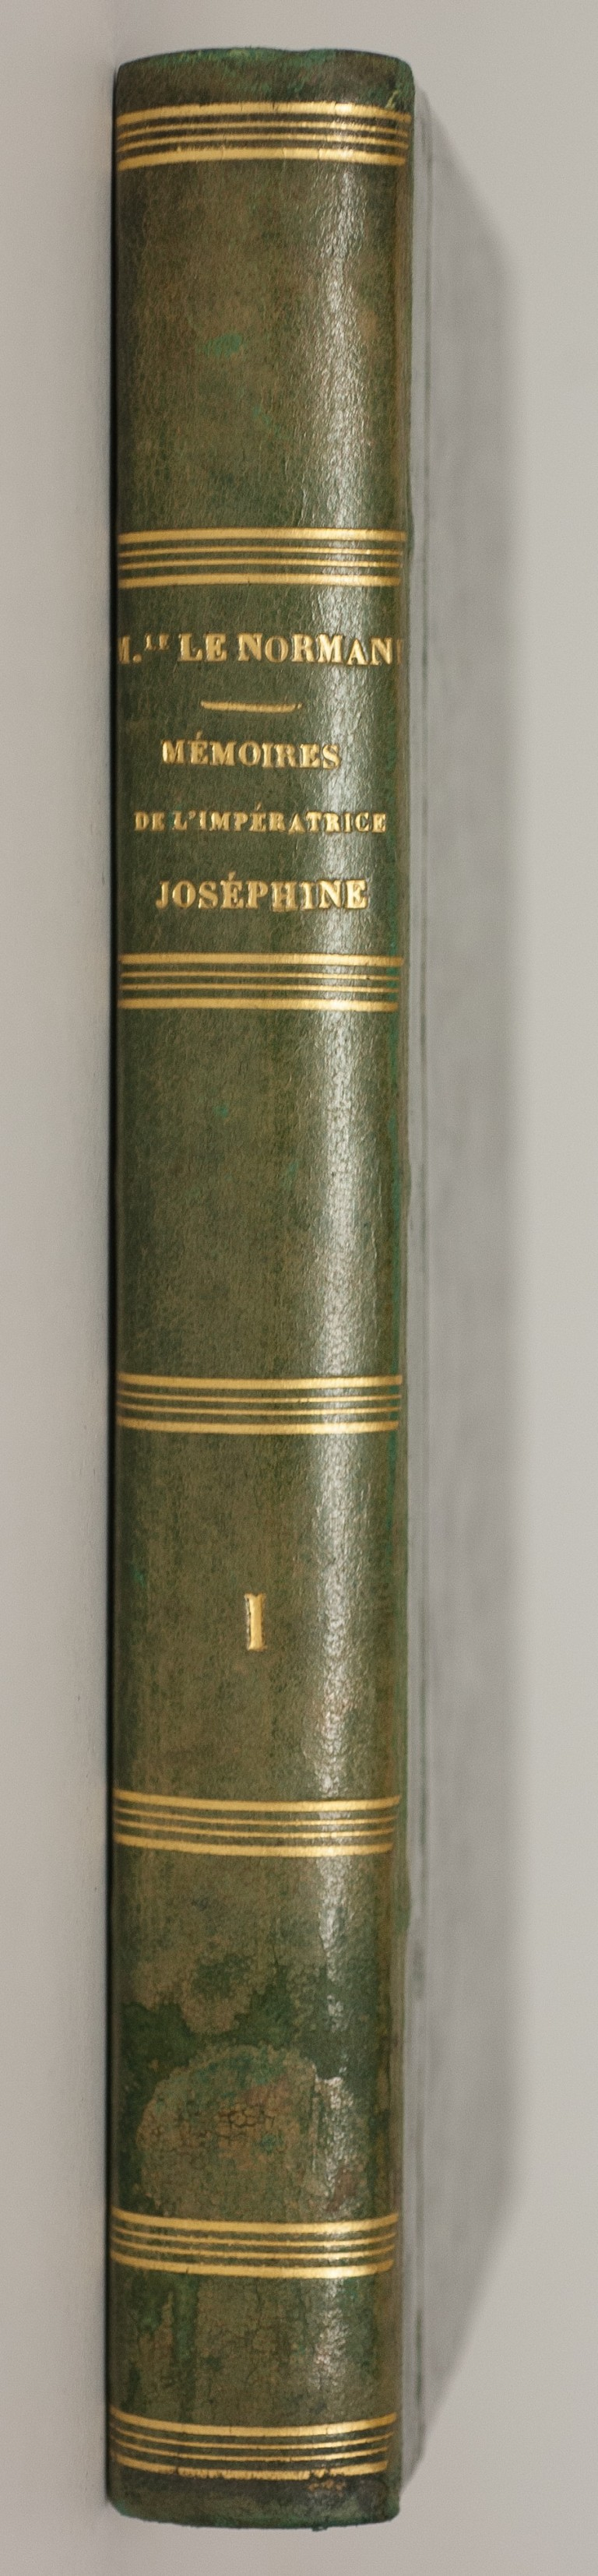 Spine and inside front cover of the first volume of Marie-Anne Lenormand's 'Mémoires historiques et secrets de l'Impératrice Joséphine', held in the Bowes archive